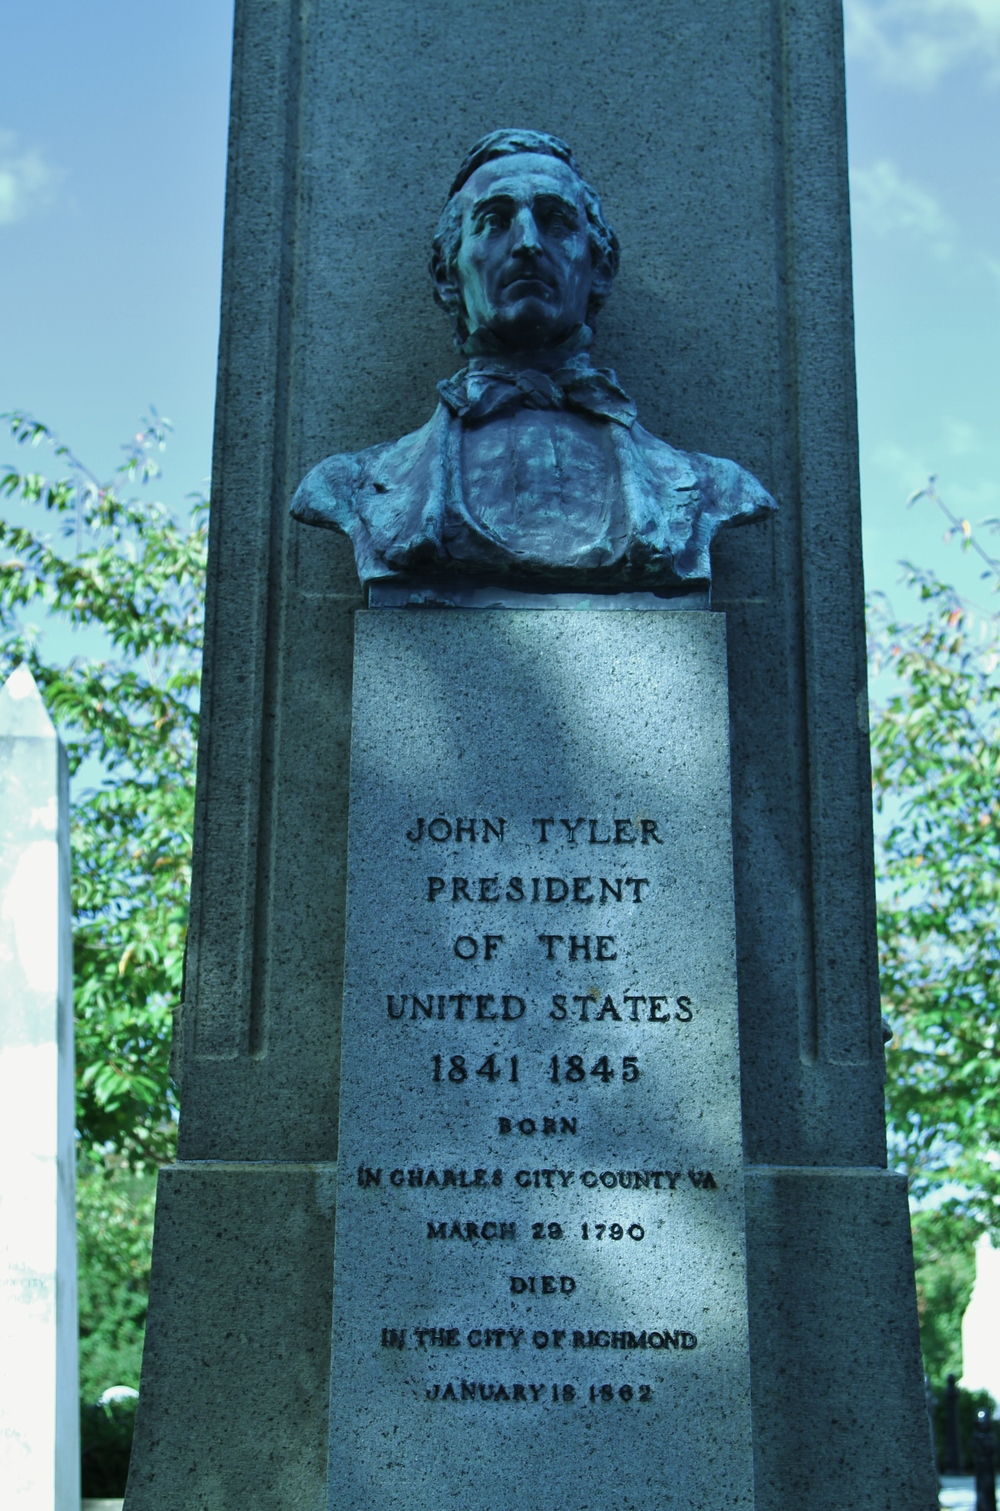 The grave of John Tyler, our tenth president.